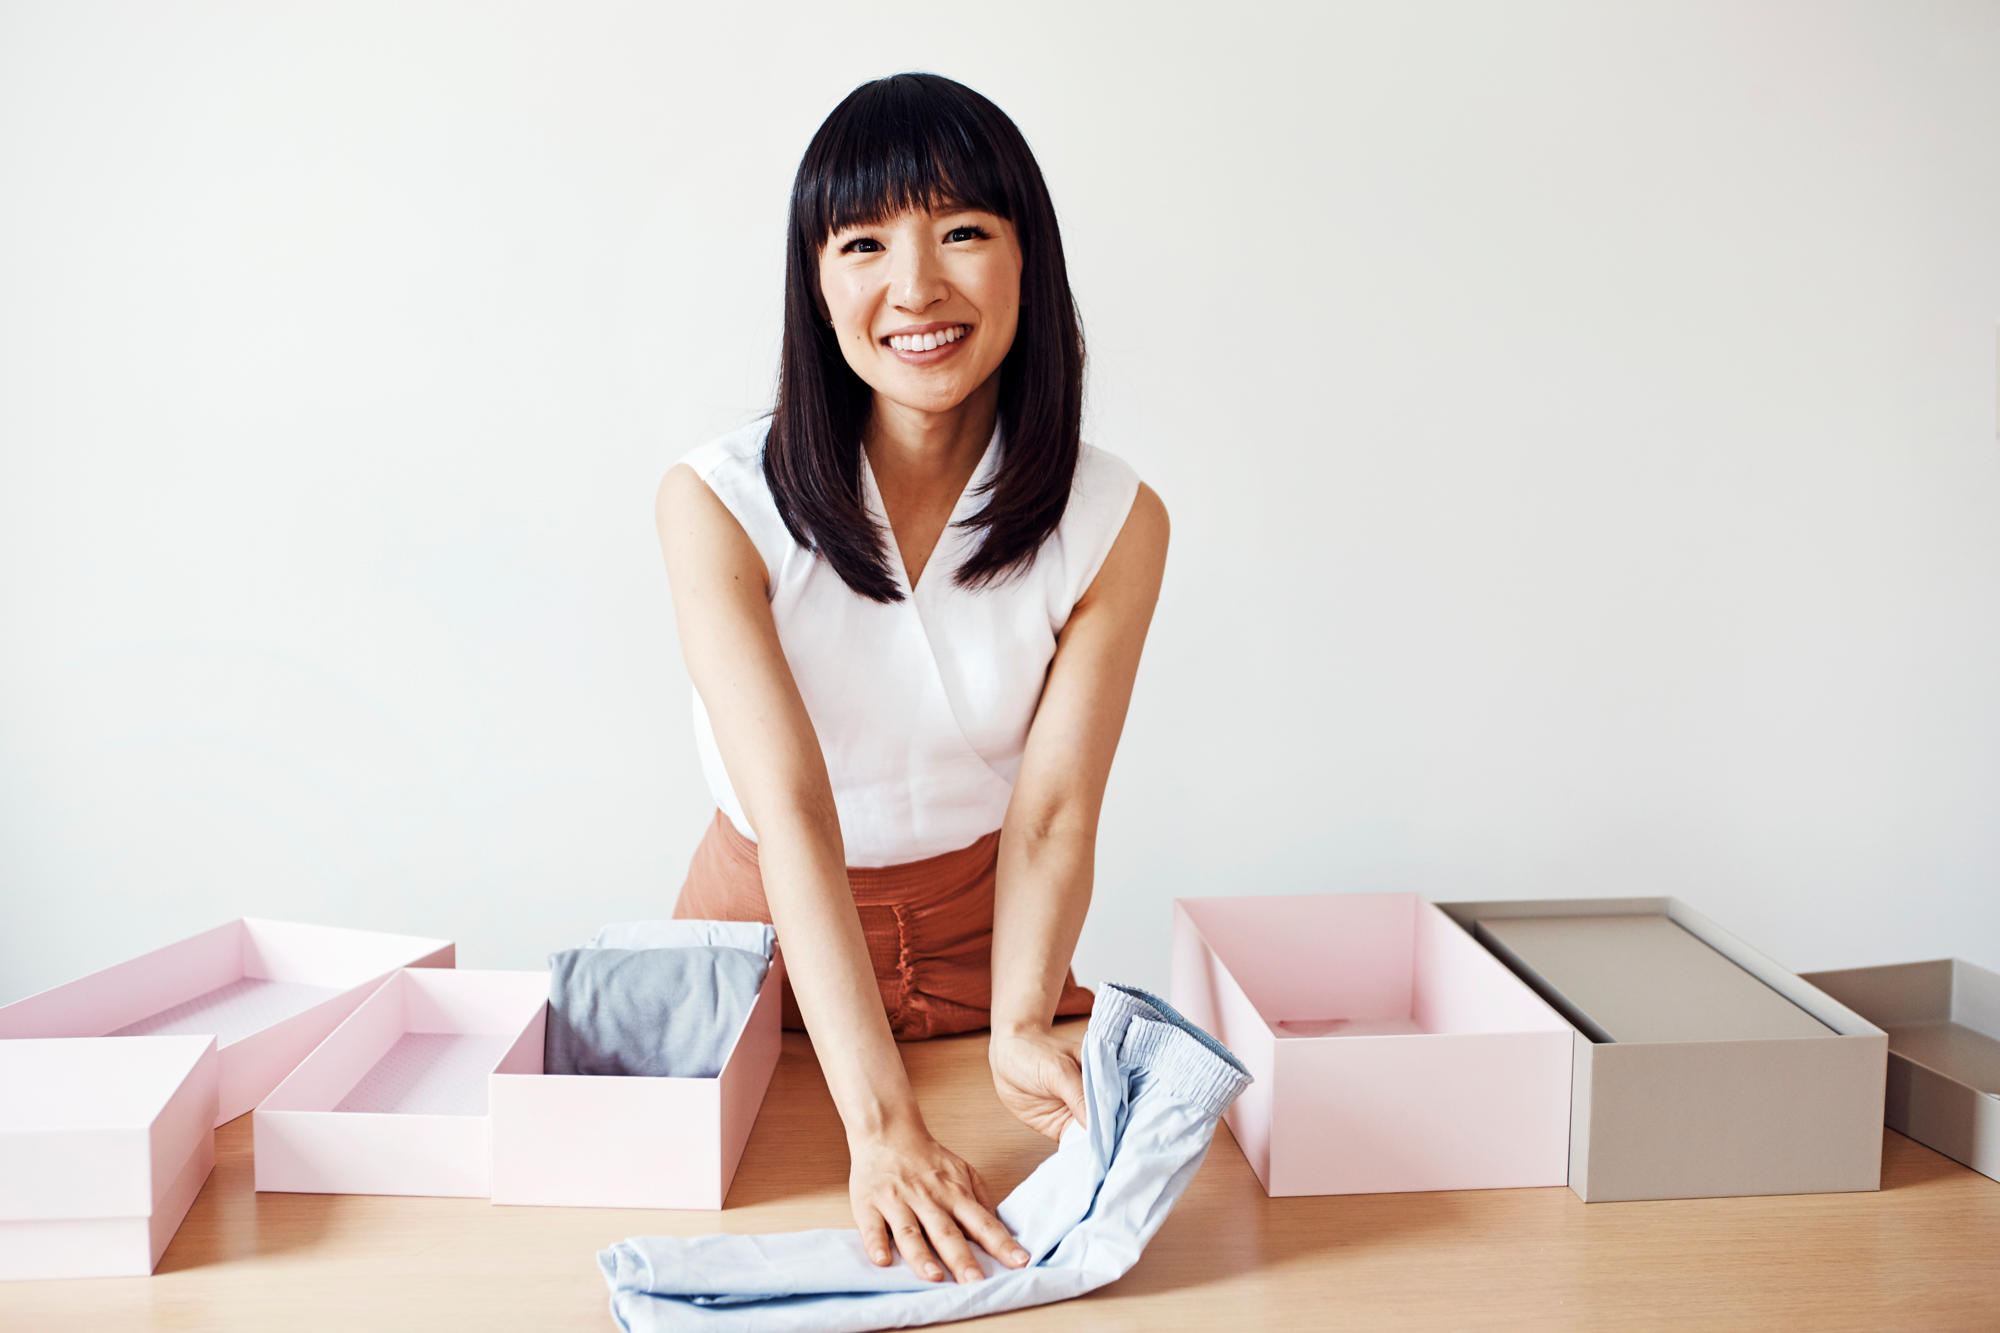 Marie Kondo -  source  https://people.com/home/marie-kondo-reveals-the-secret-to-actually-finishing-tidying-up-plus-more-tips/